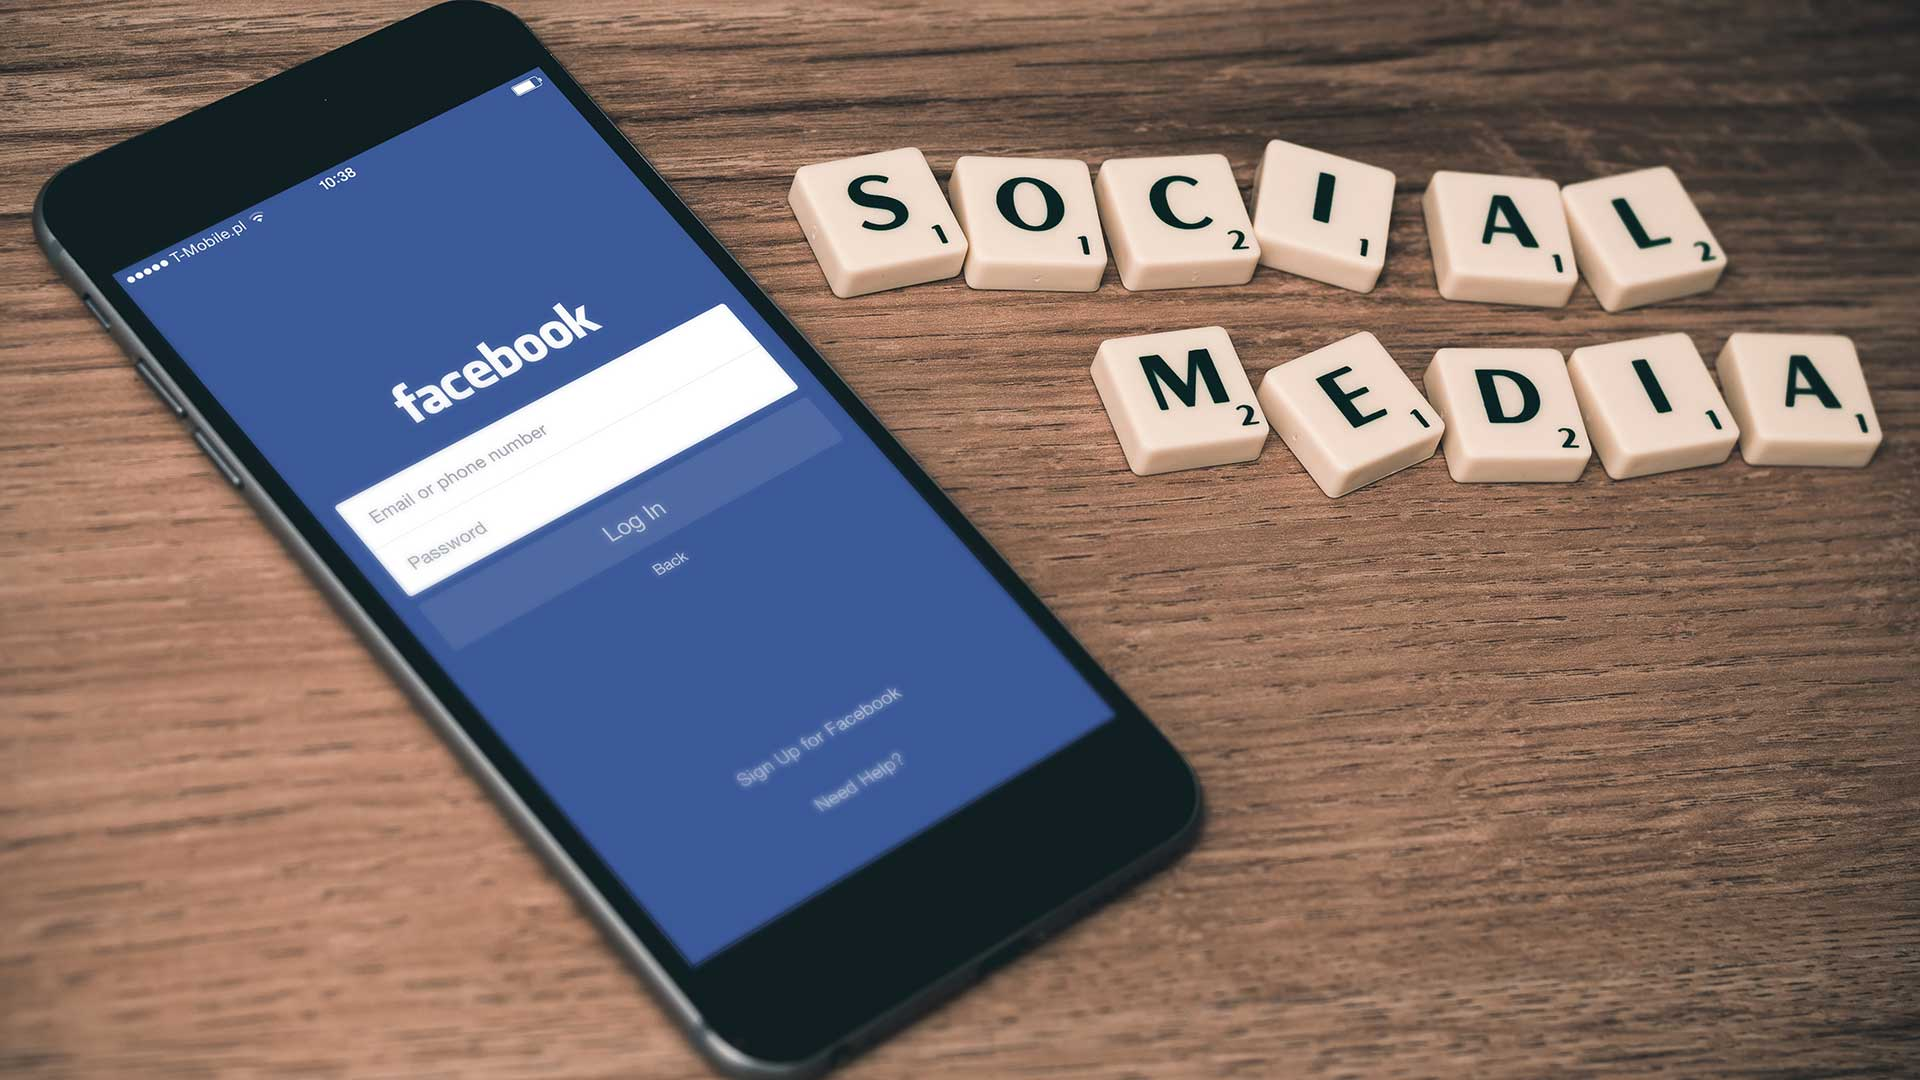 Social Media Facebook Mobile Ticmatic desarrollo web marketing online en Vitoria Gasteiz